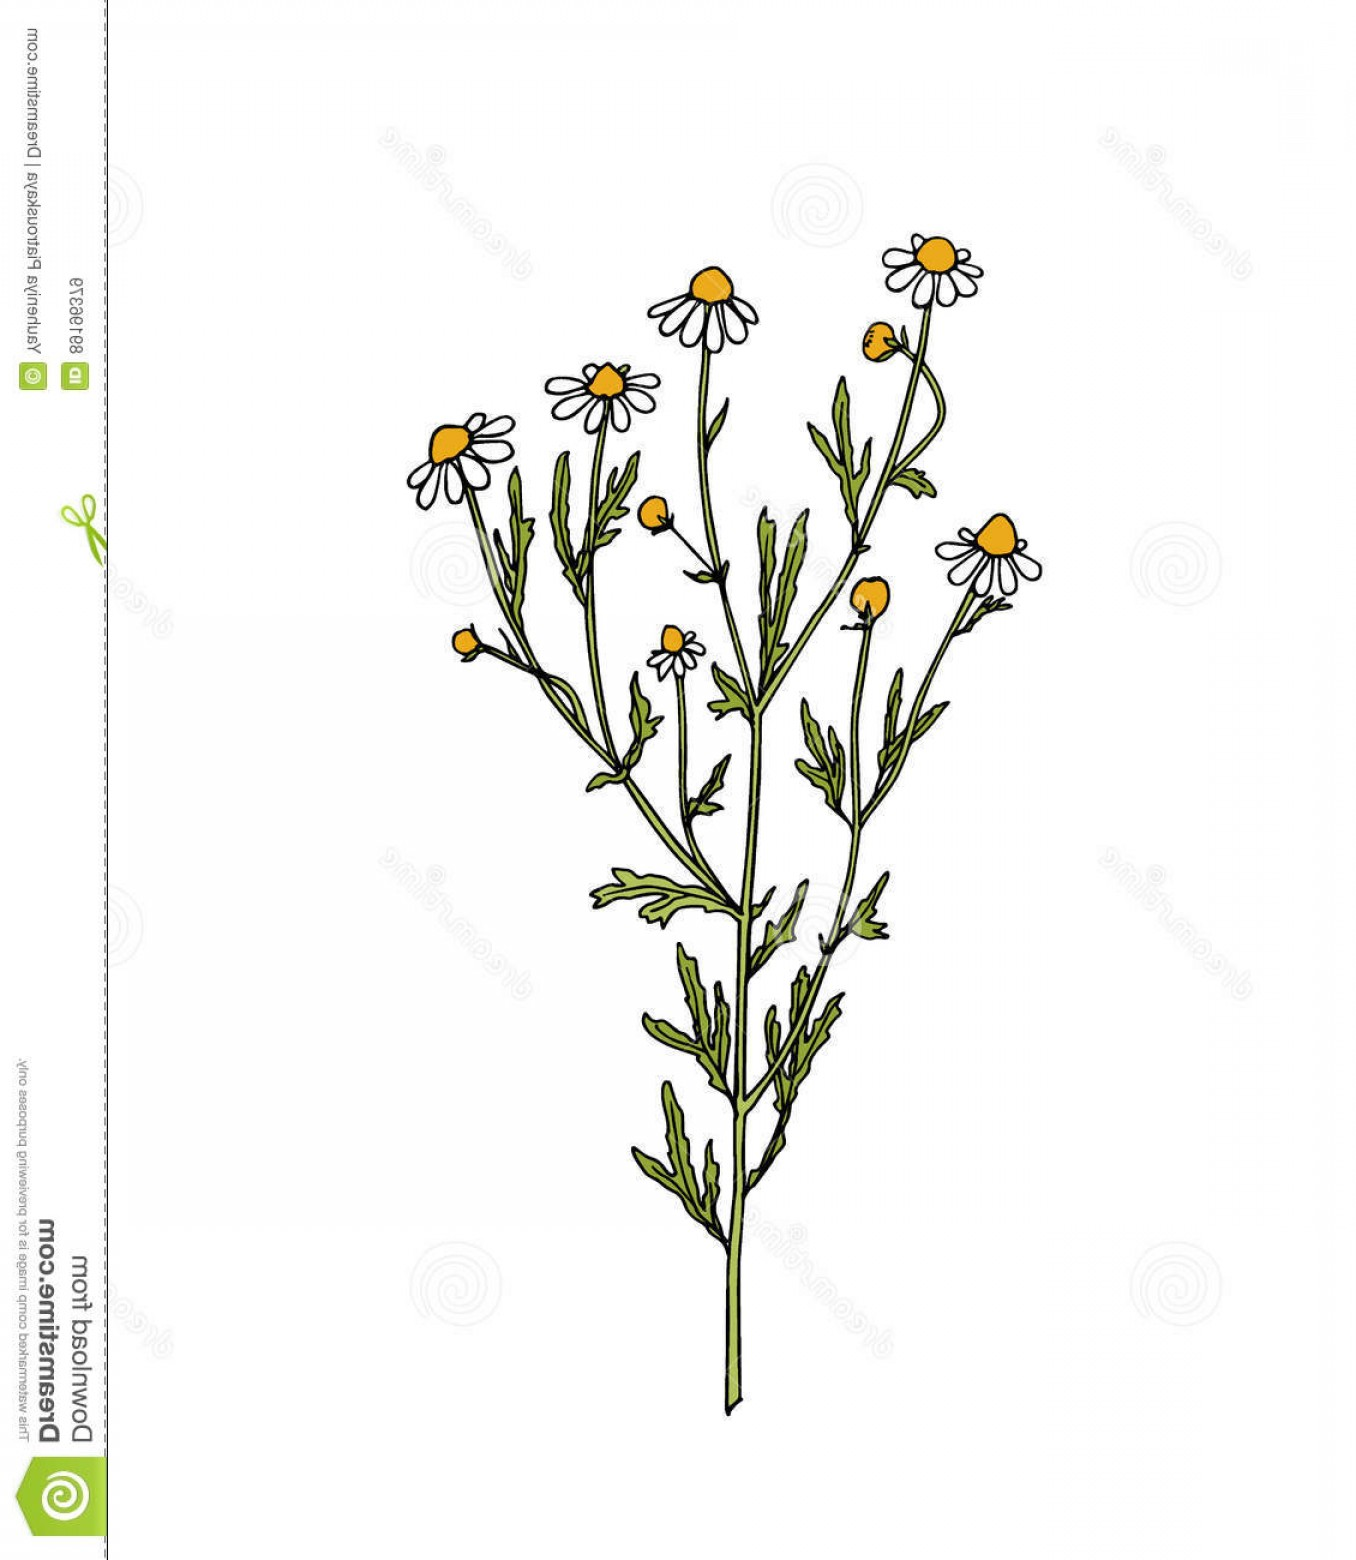 Wildflowers Outline Vector: Stock Illustration Hand Drawn Wildflower Vector Illustration Chamomile Twig Beautiful Ink Drawing Vintage Style Image